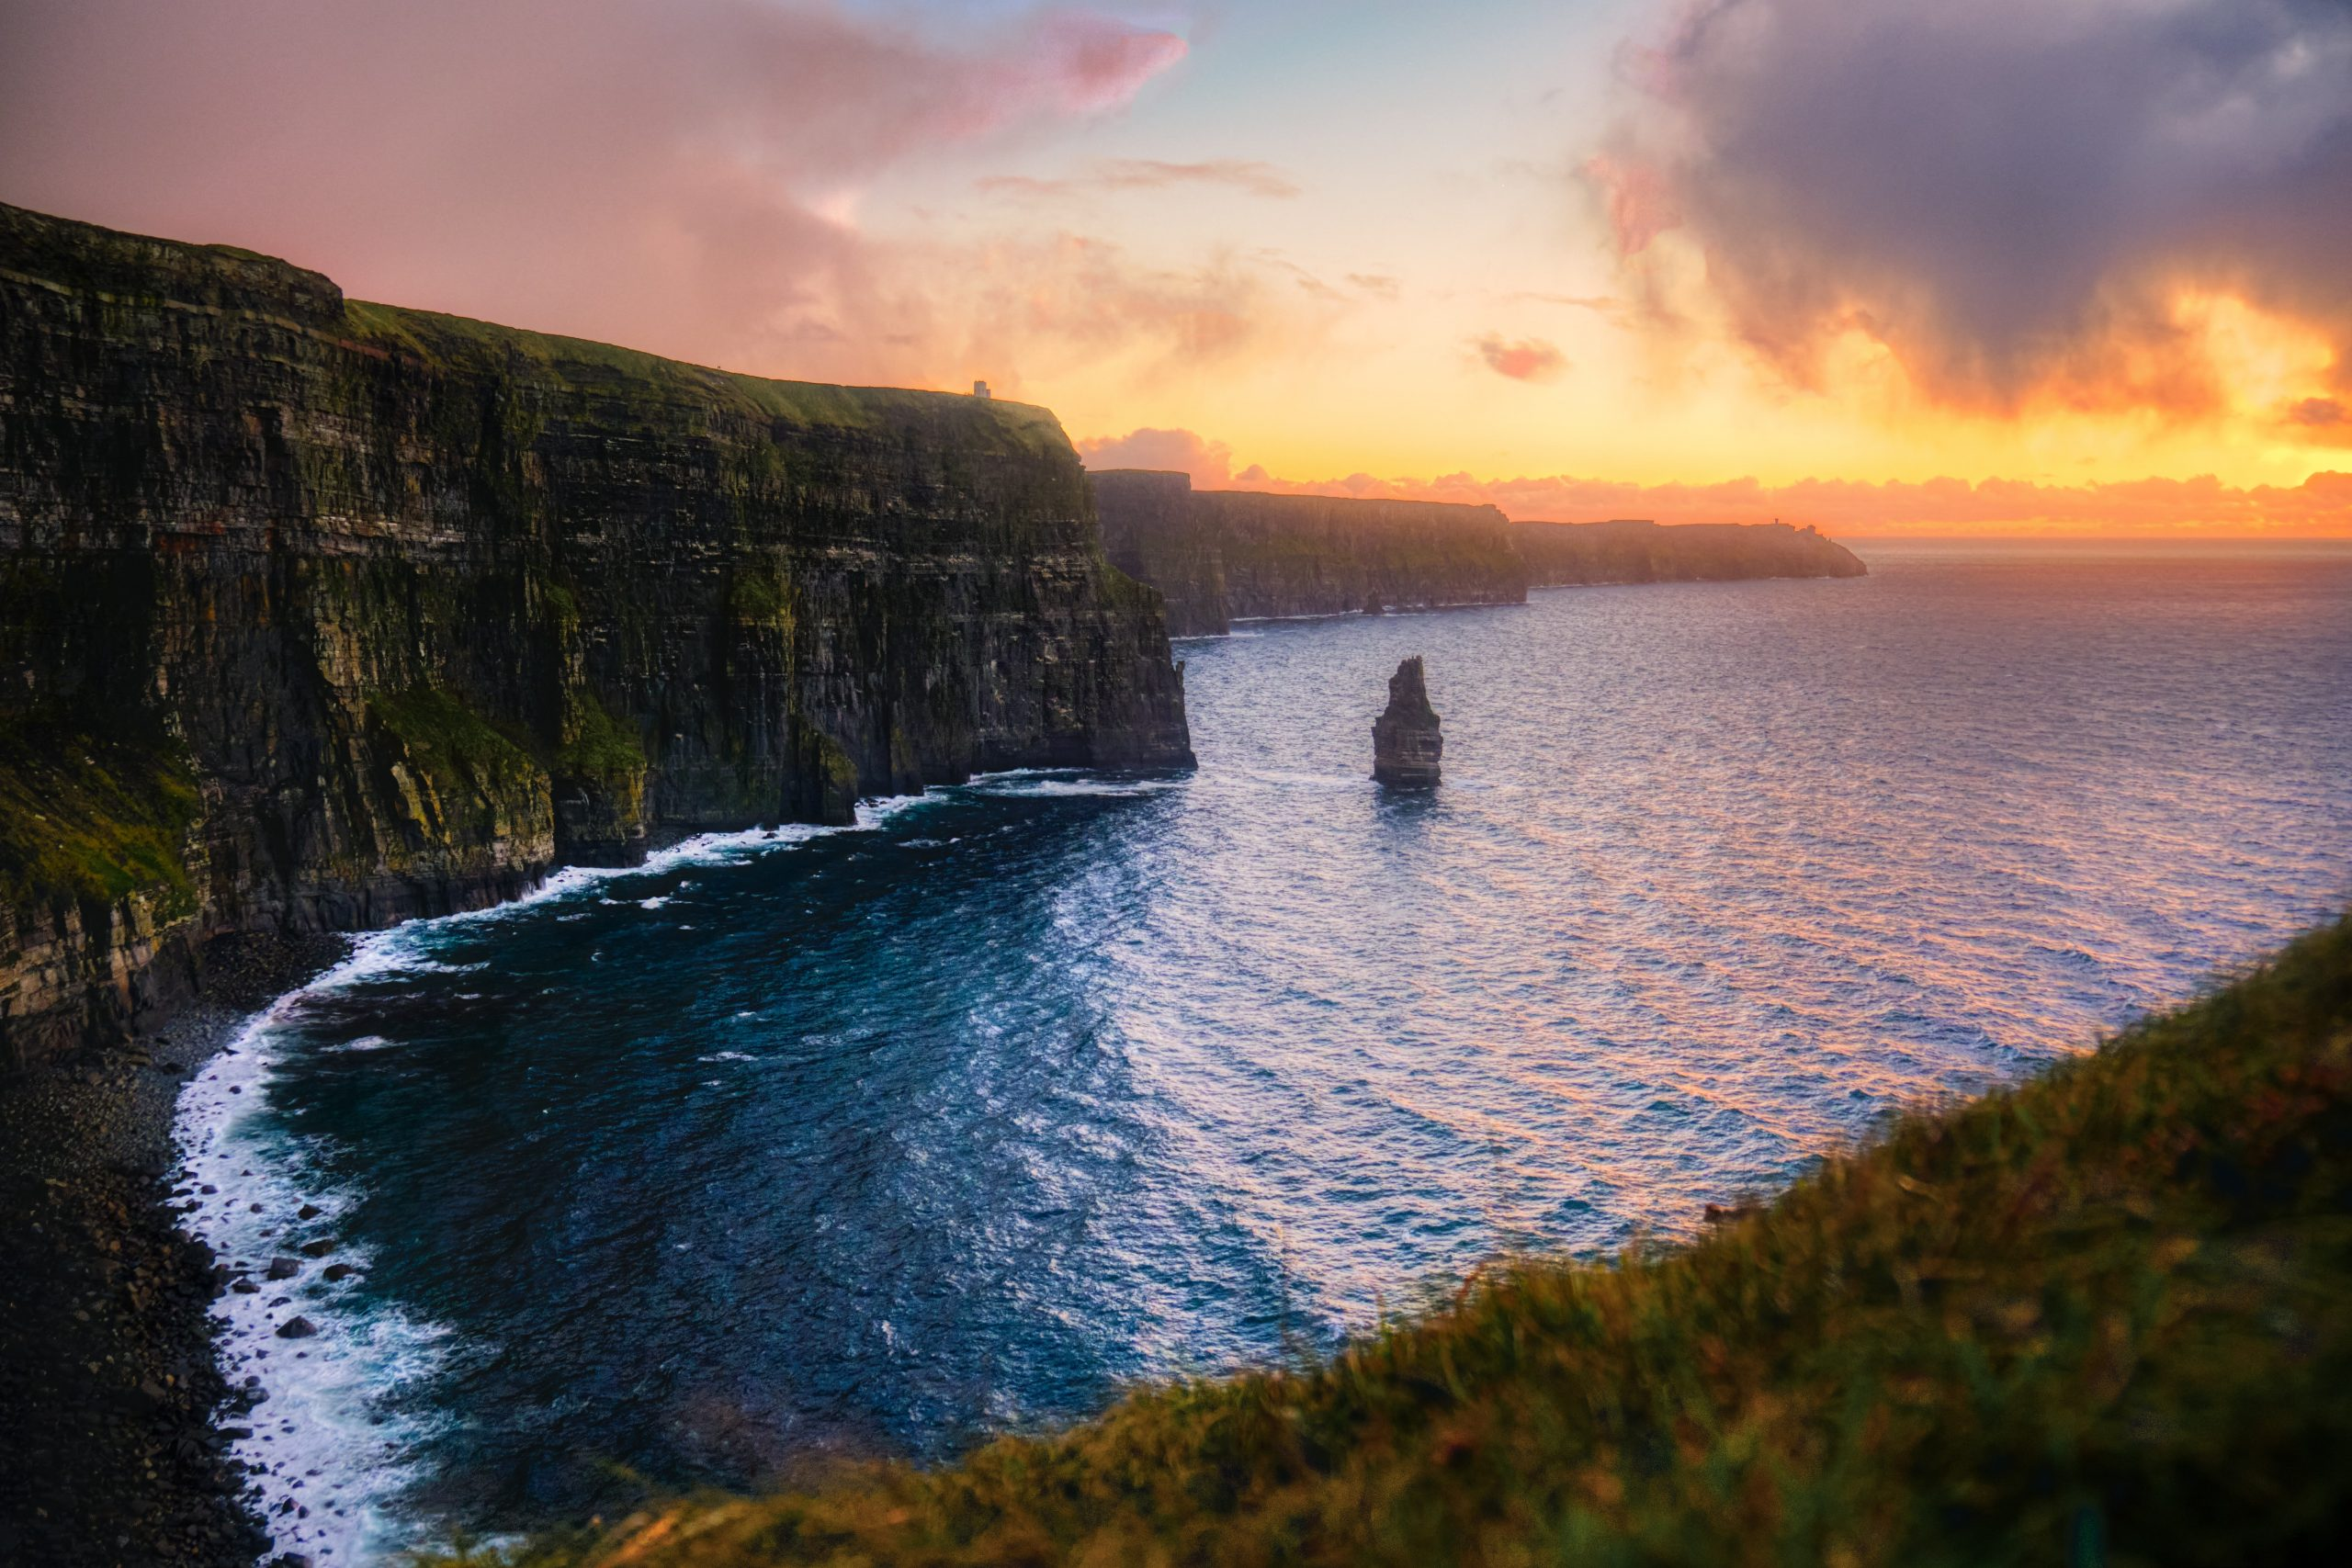 Cliff Of Moher, Ireland By Federico Beccari [Source : unsplash]